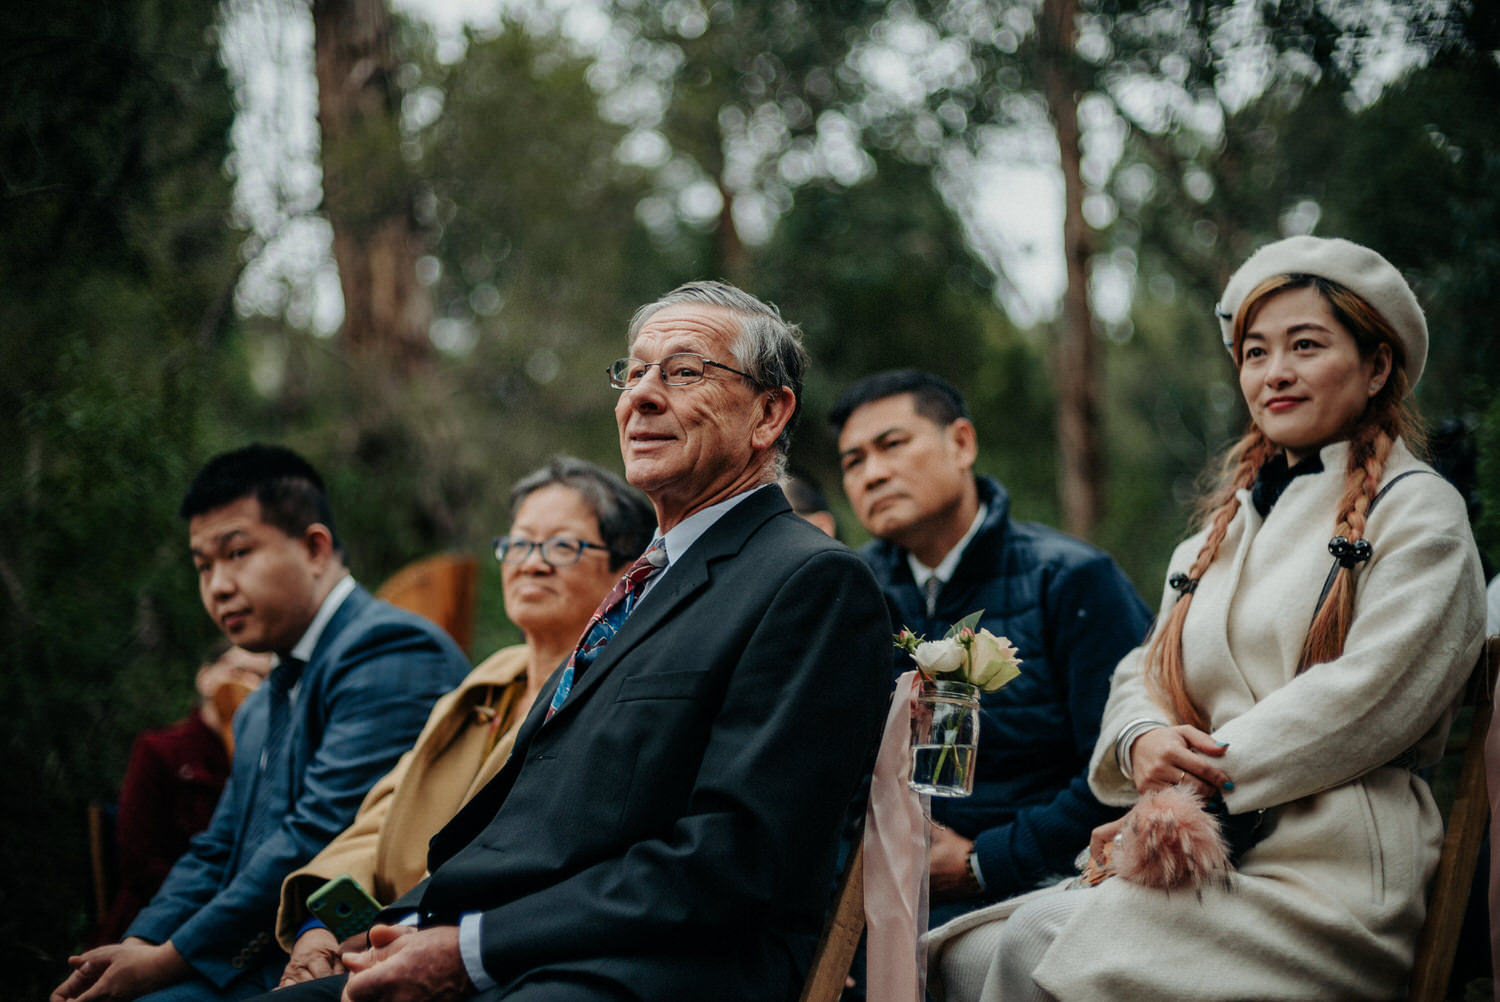 021-melbourne-wedding-bride-and-groom-andrew-hardy-ceremony.jpg